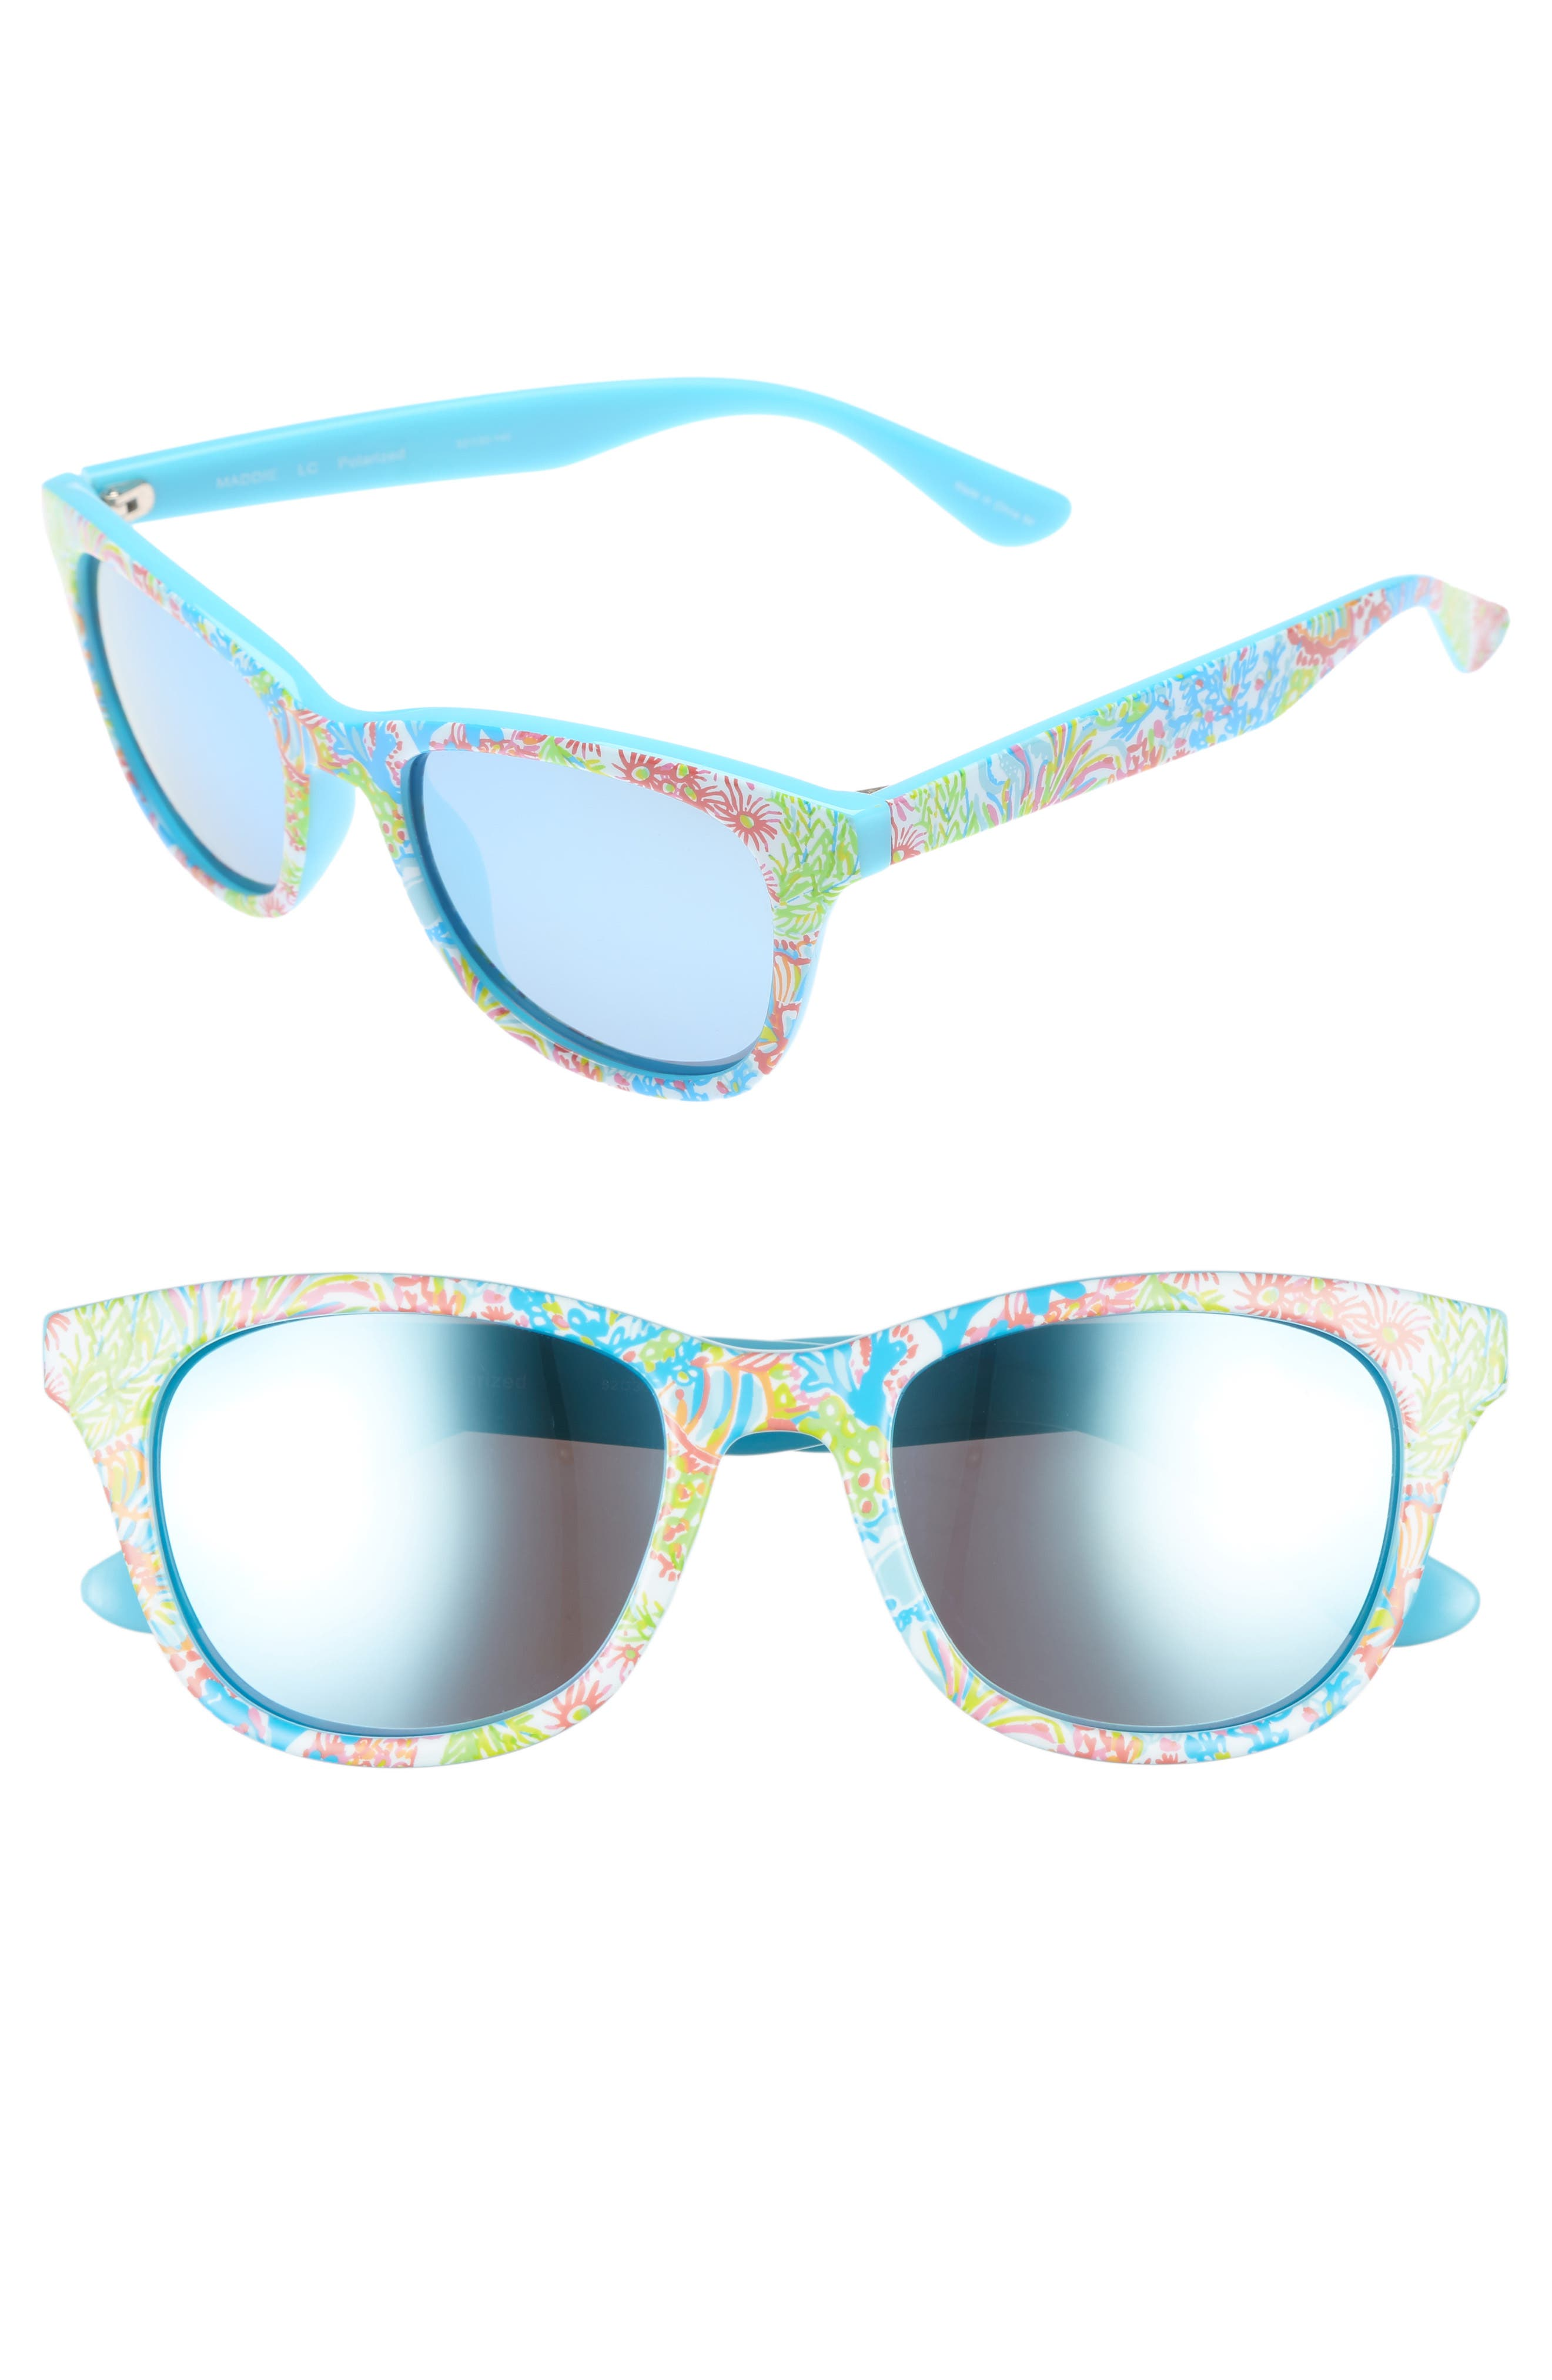 Maddie 52mm Polarized Mirrored Sunglasses,                             Main thumbnail 1, color,                             Blue